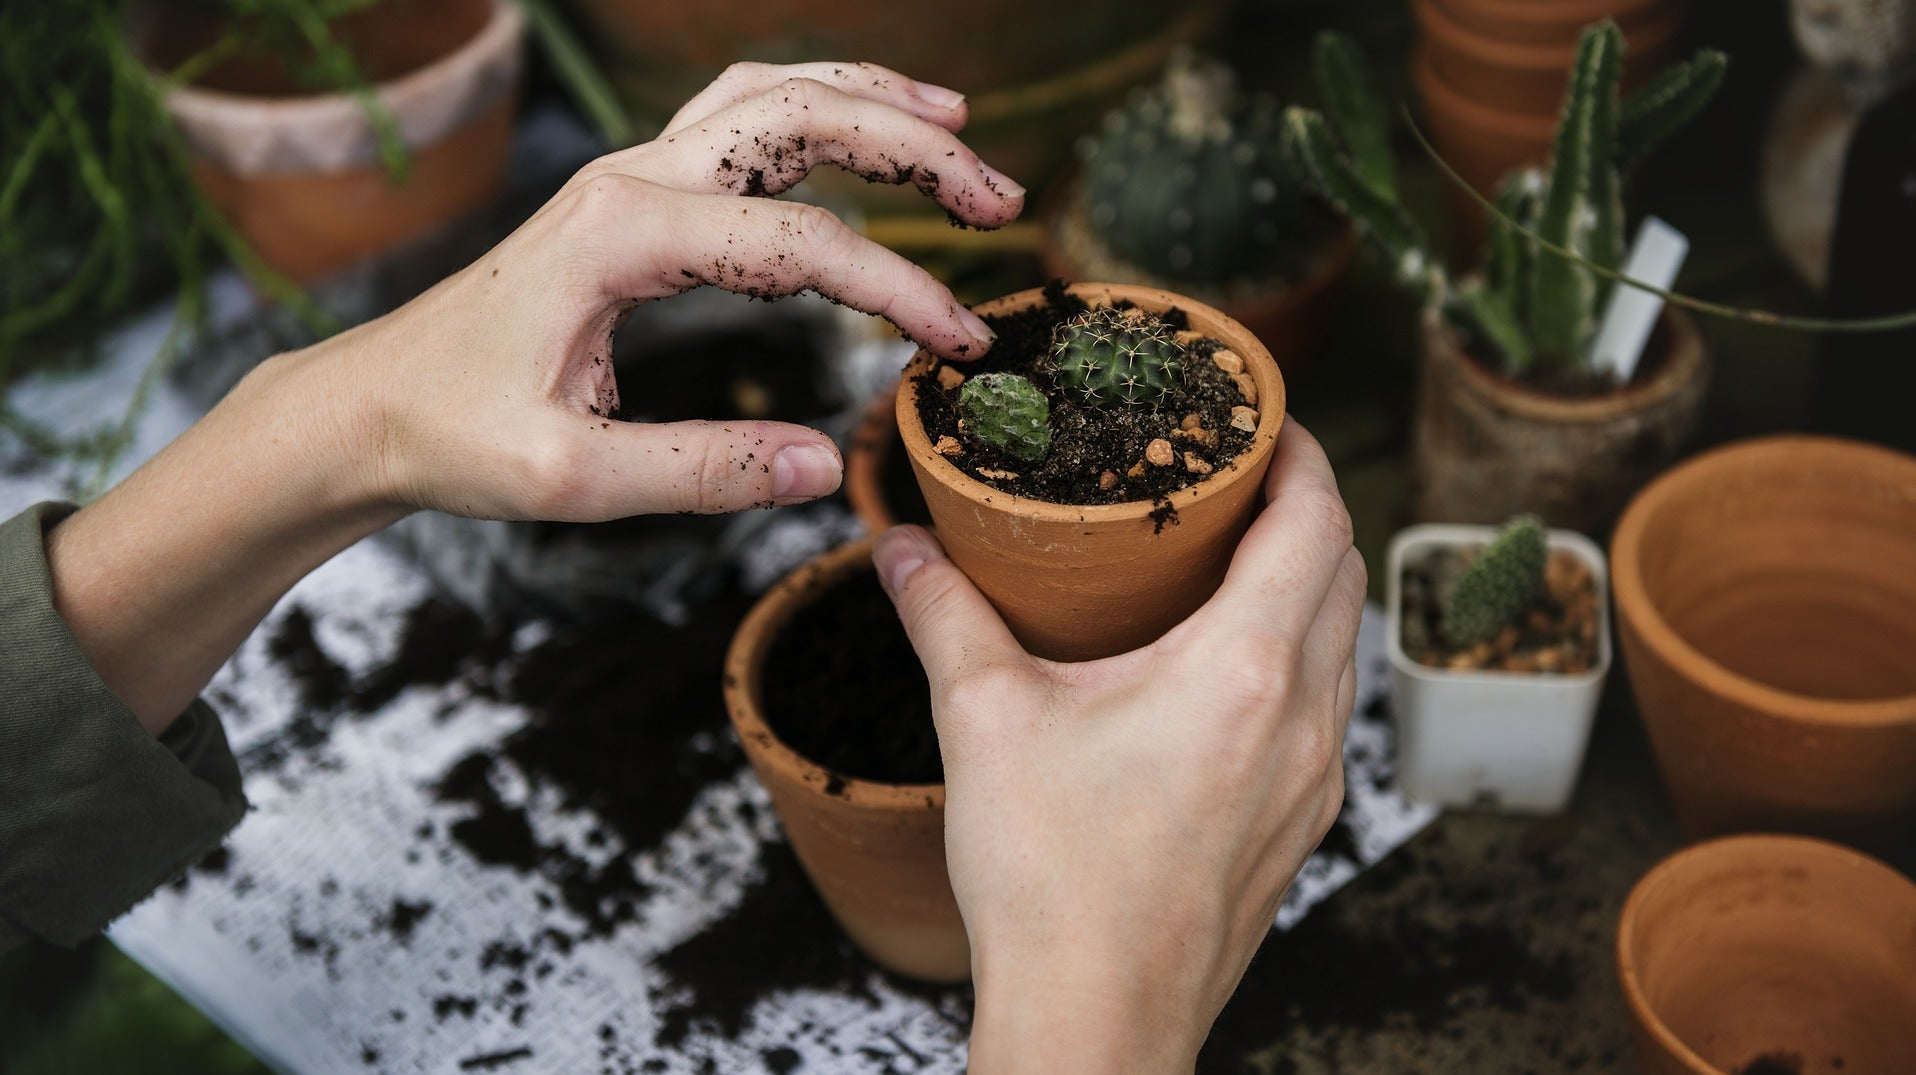 How To Repot Your Plants Without Killing Them